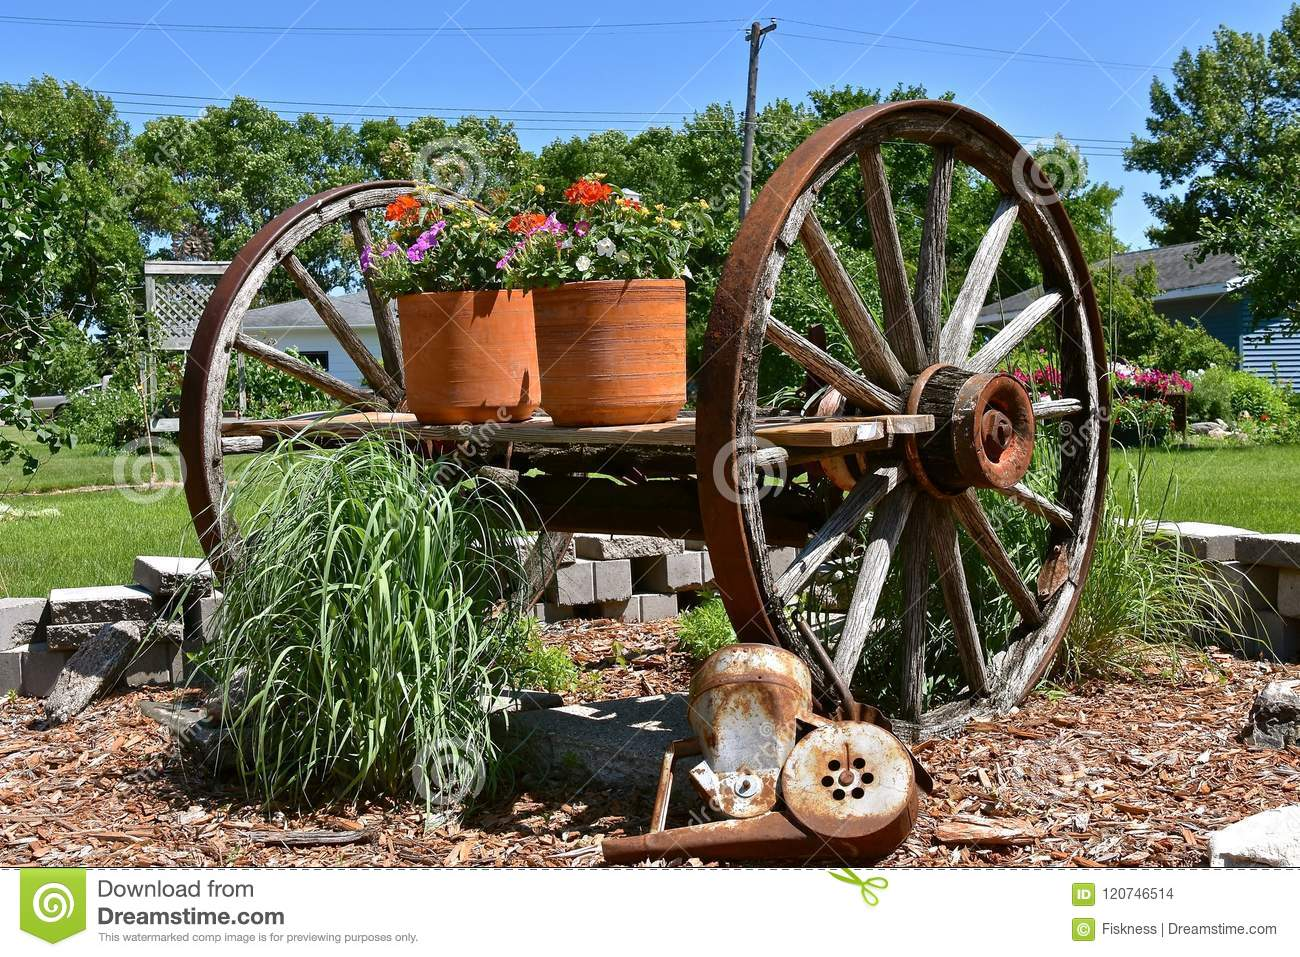 Old Wooden Wagon Wheels On A Cart Holding Flower Pots Stock Photo Image Of Wood Farm 120746514